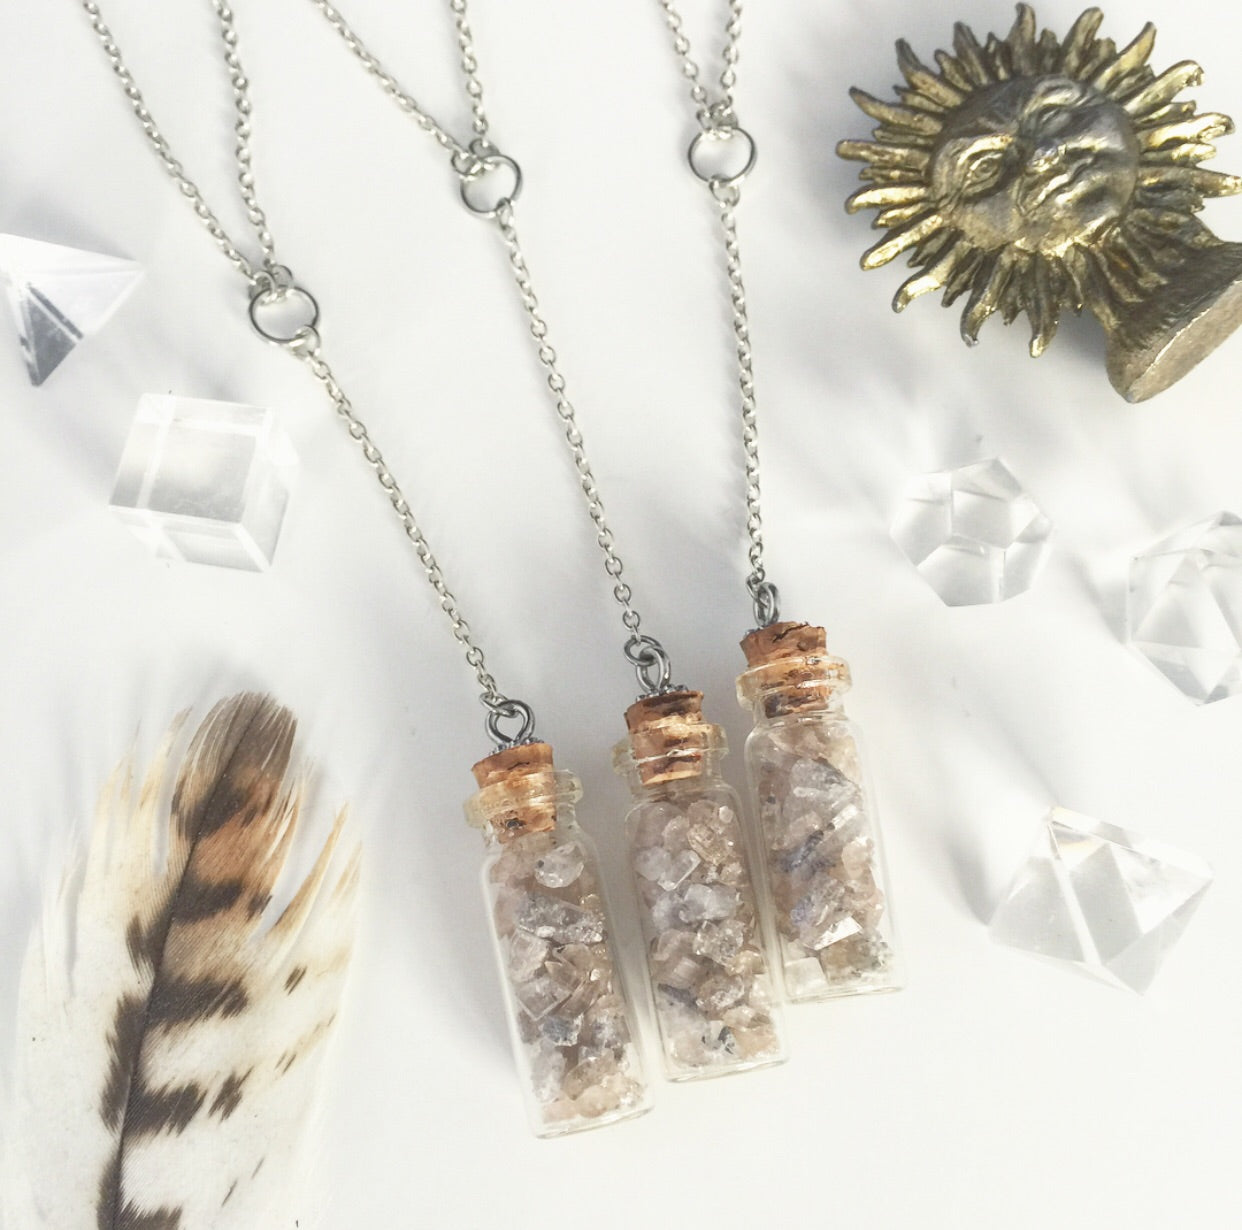 Topaz Bottle Necklace